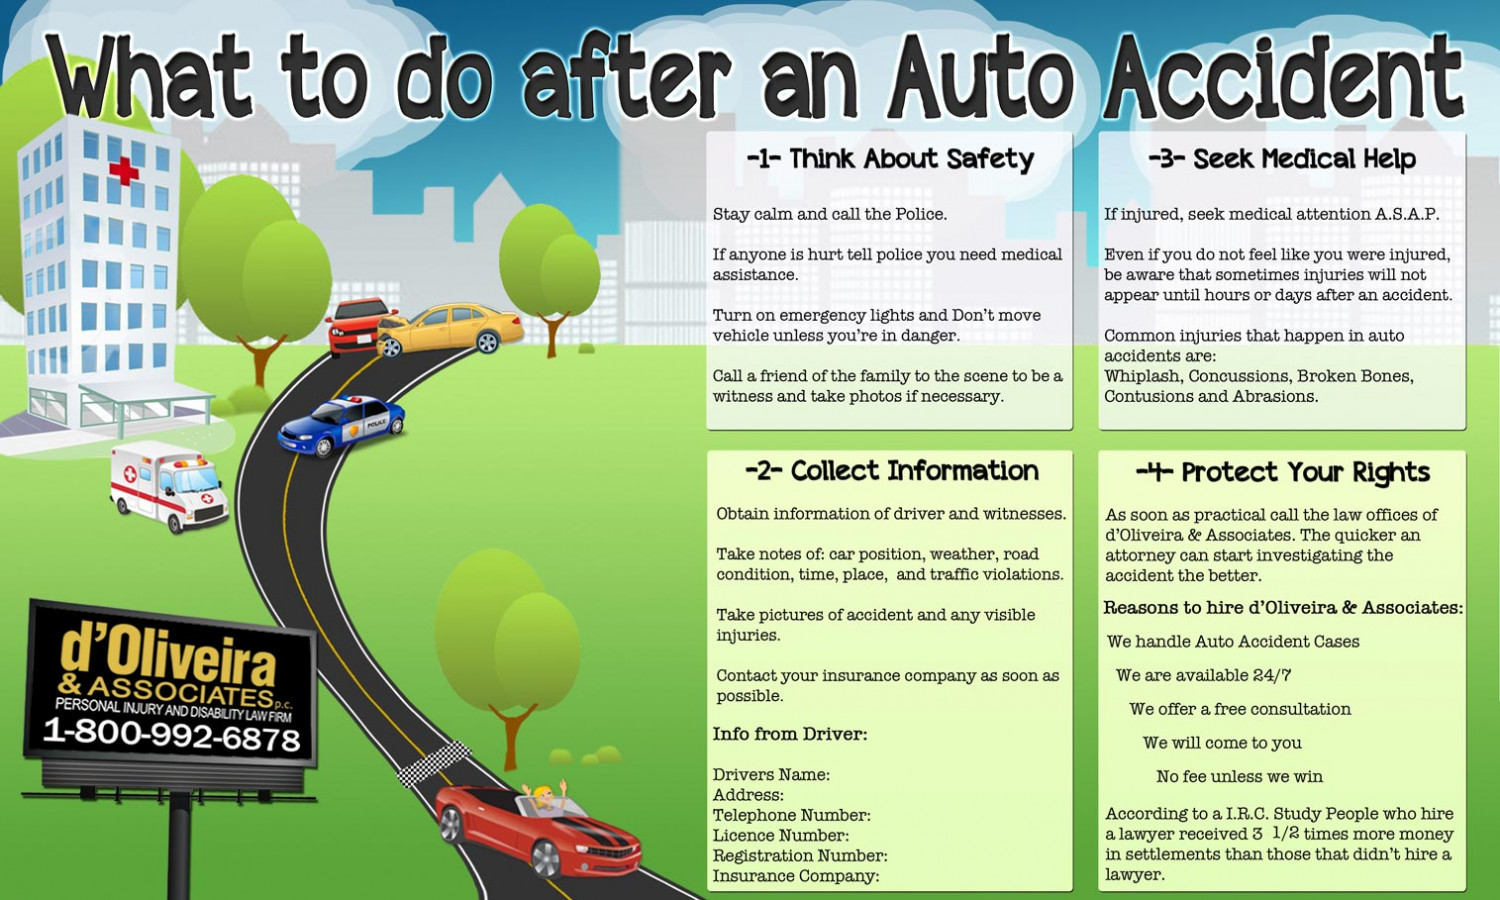 What to do after an Auto Accident Infographic